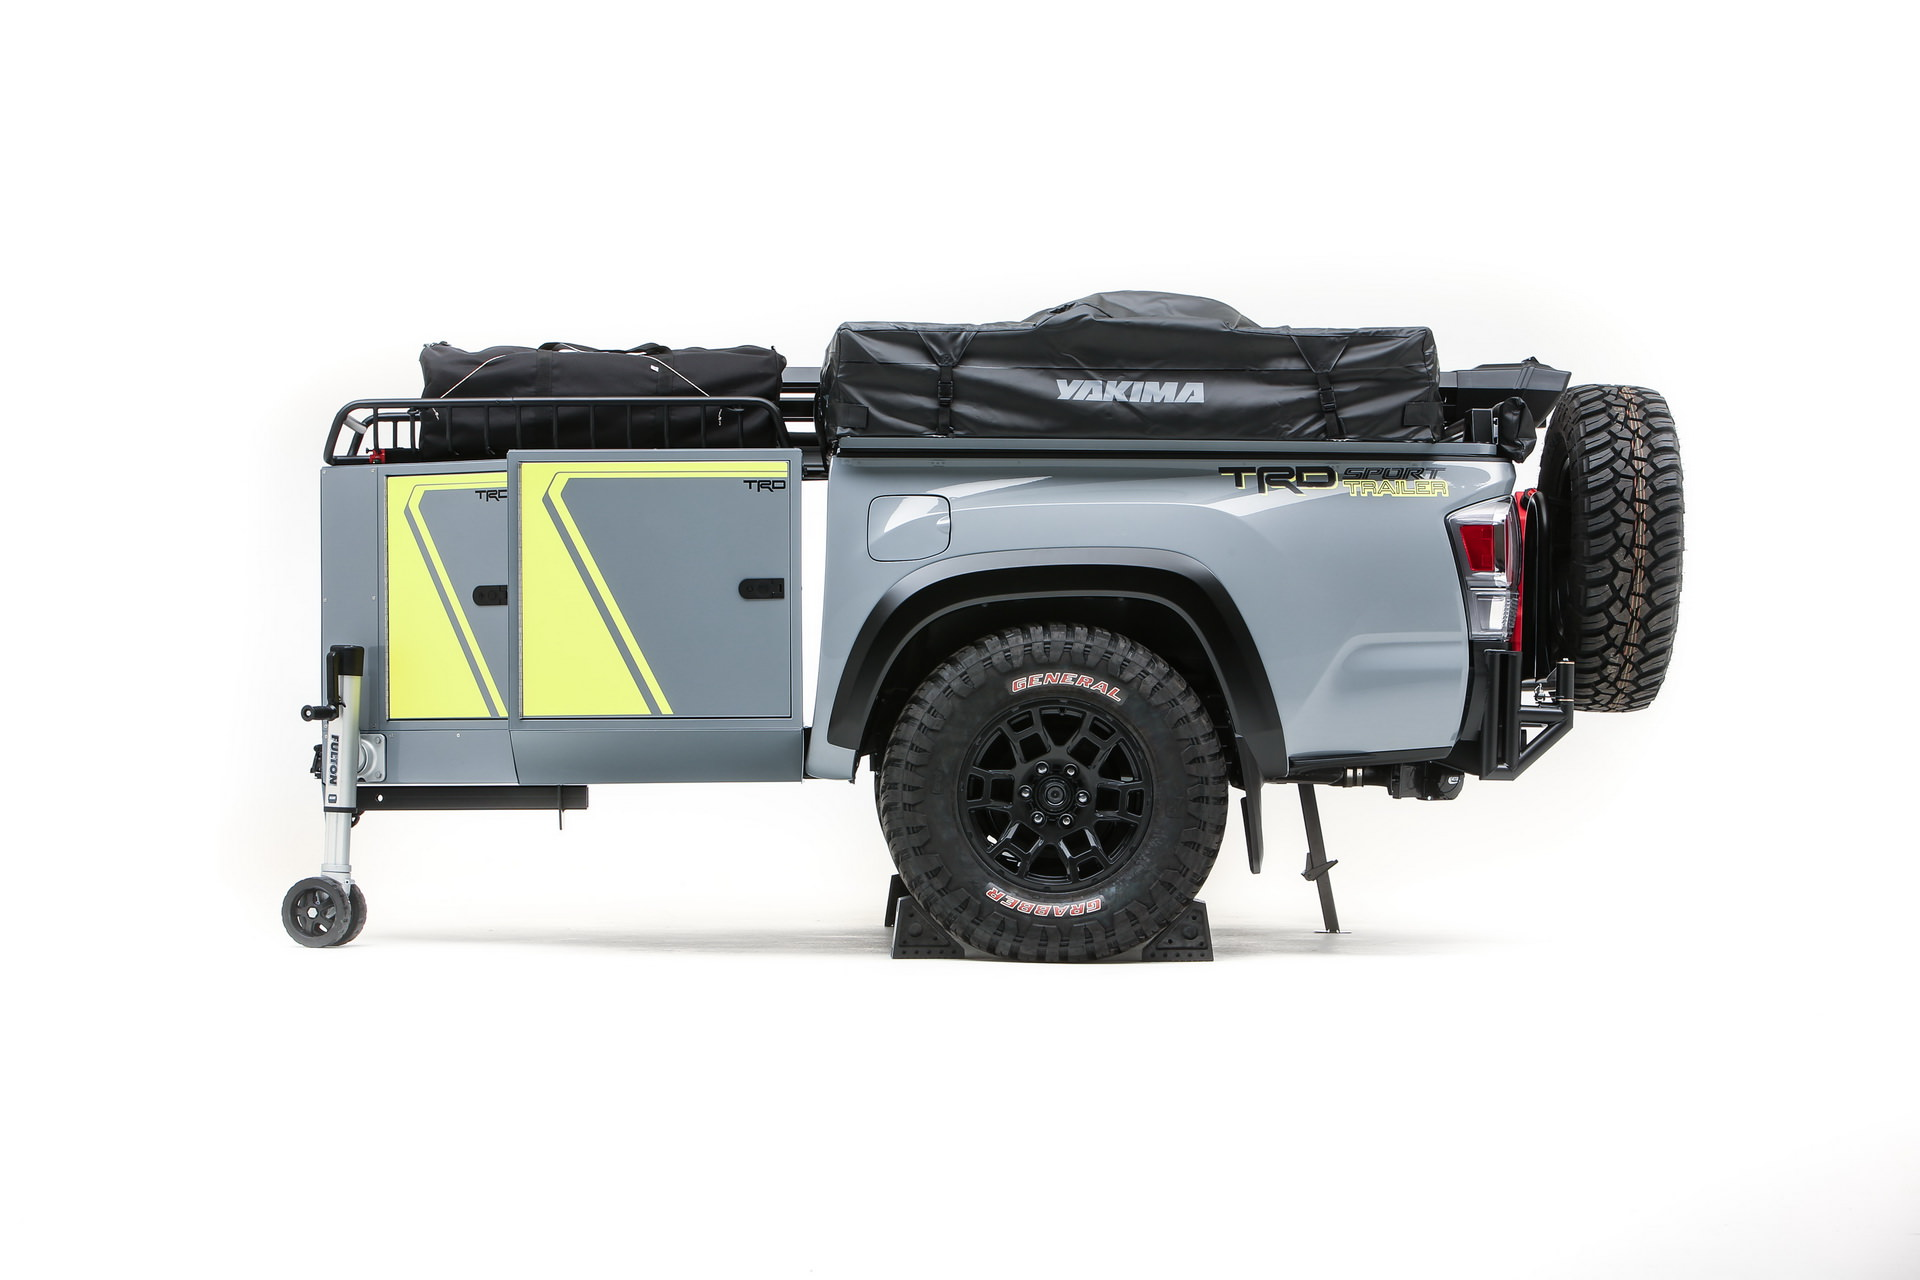 Toyota Tacoma trailer for off-road travel